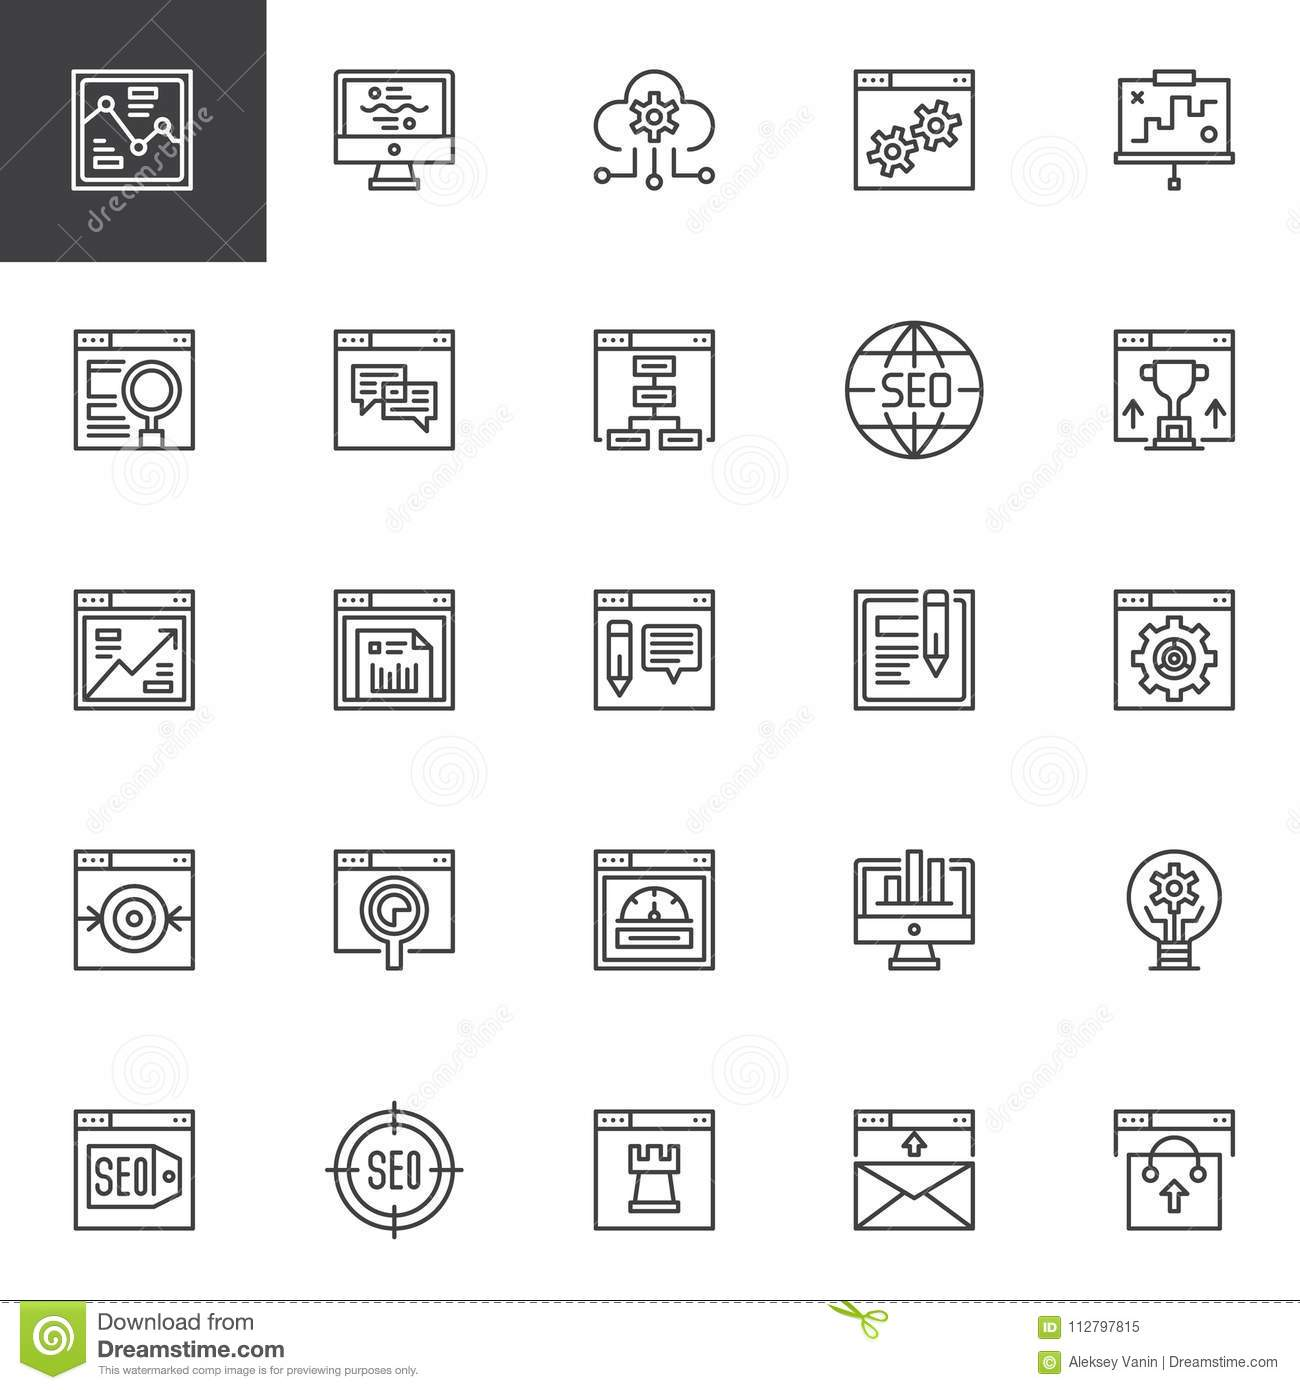 SEO and online marketing outline icons set